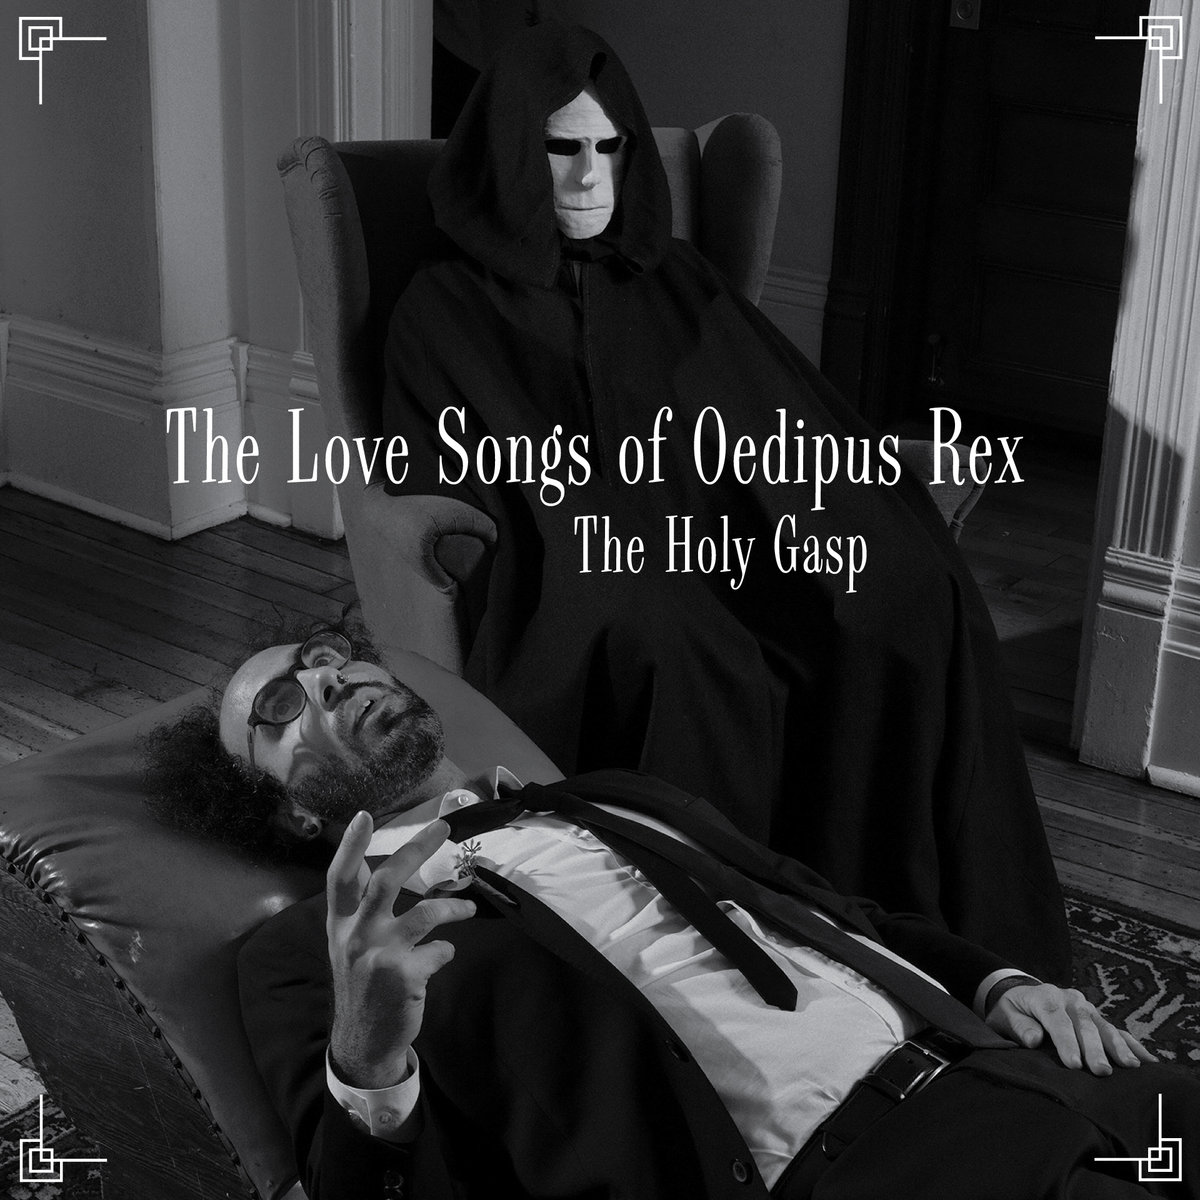 The Holy Gasp, The Love Songs of Oedipus Rex album art